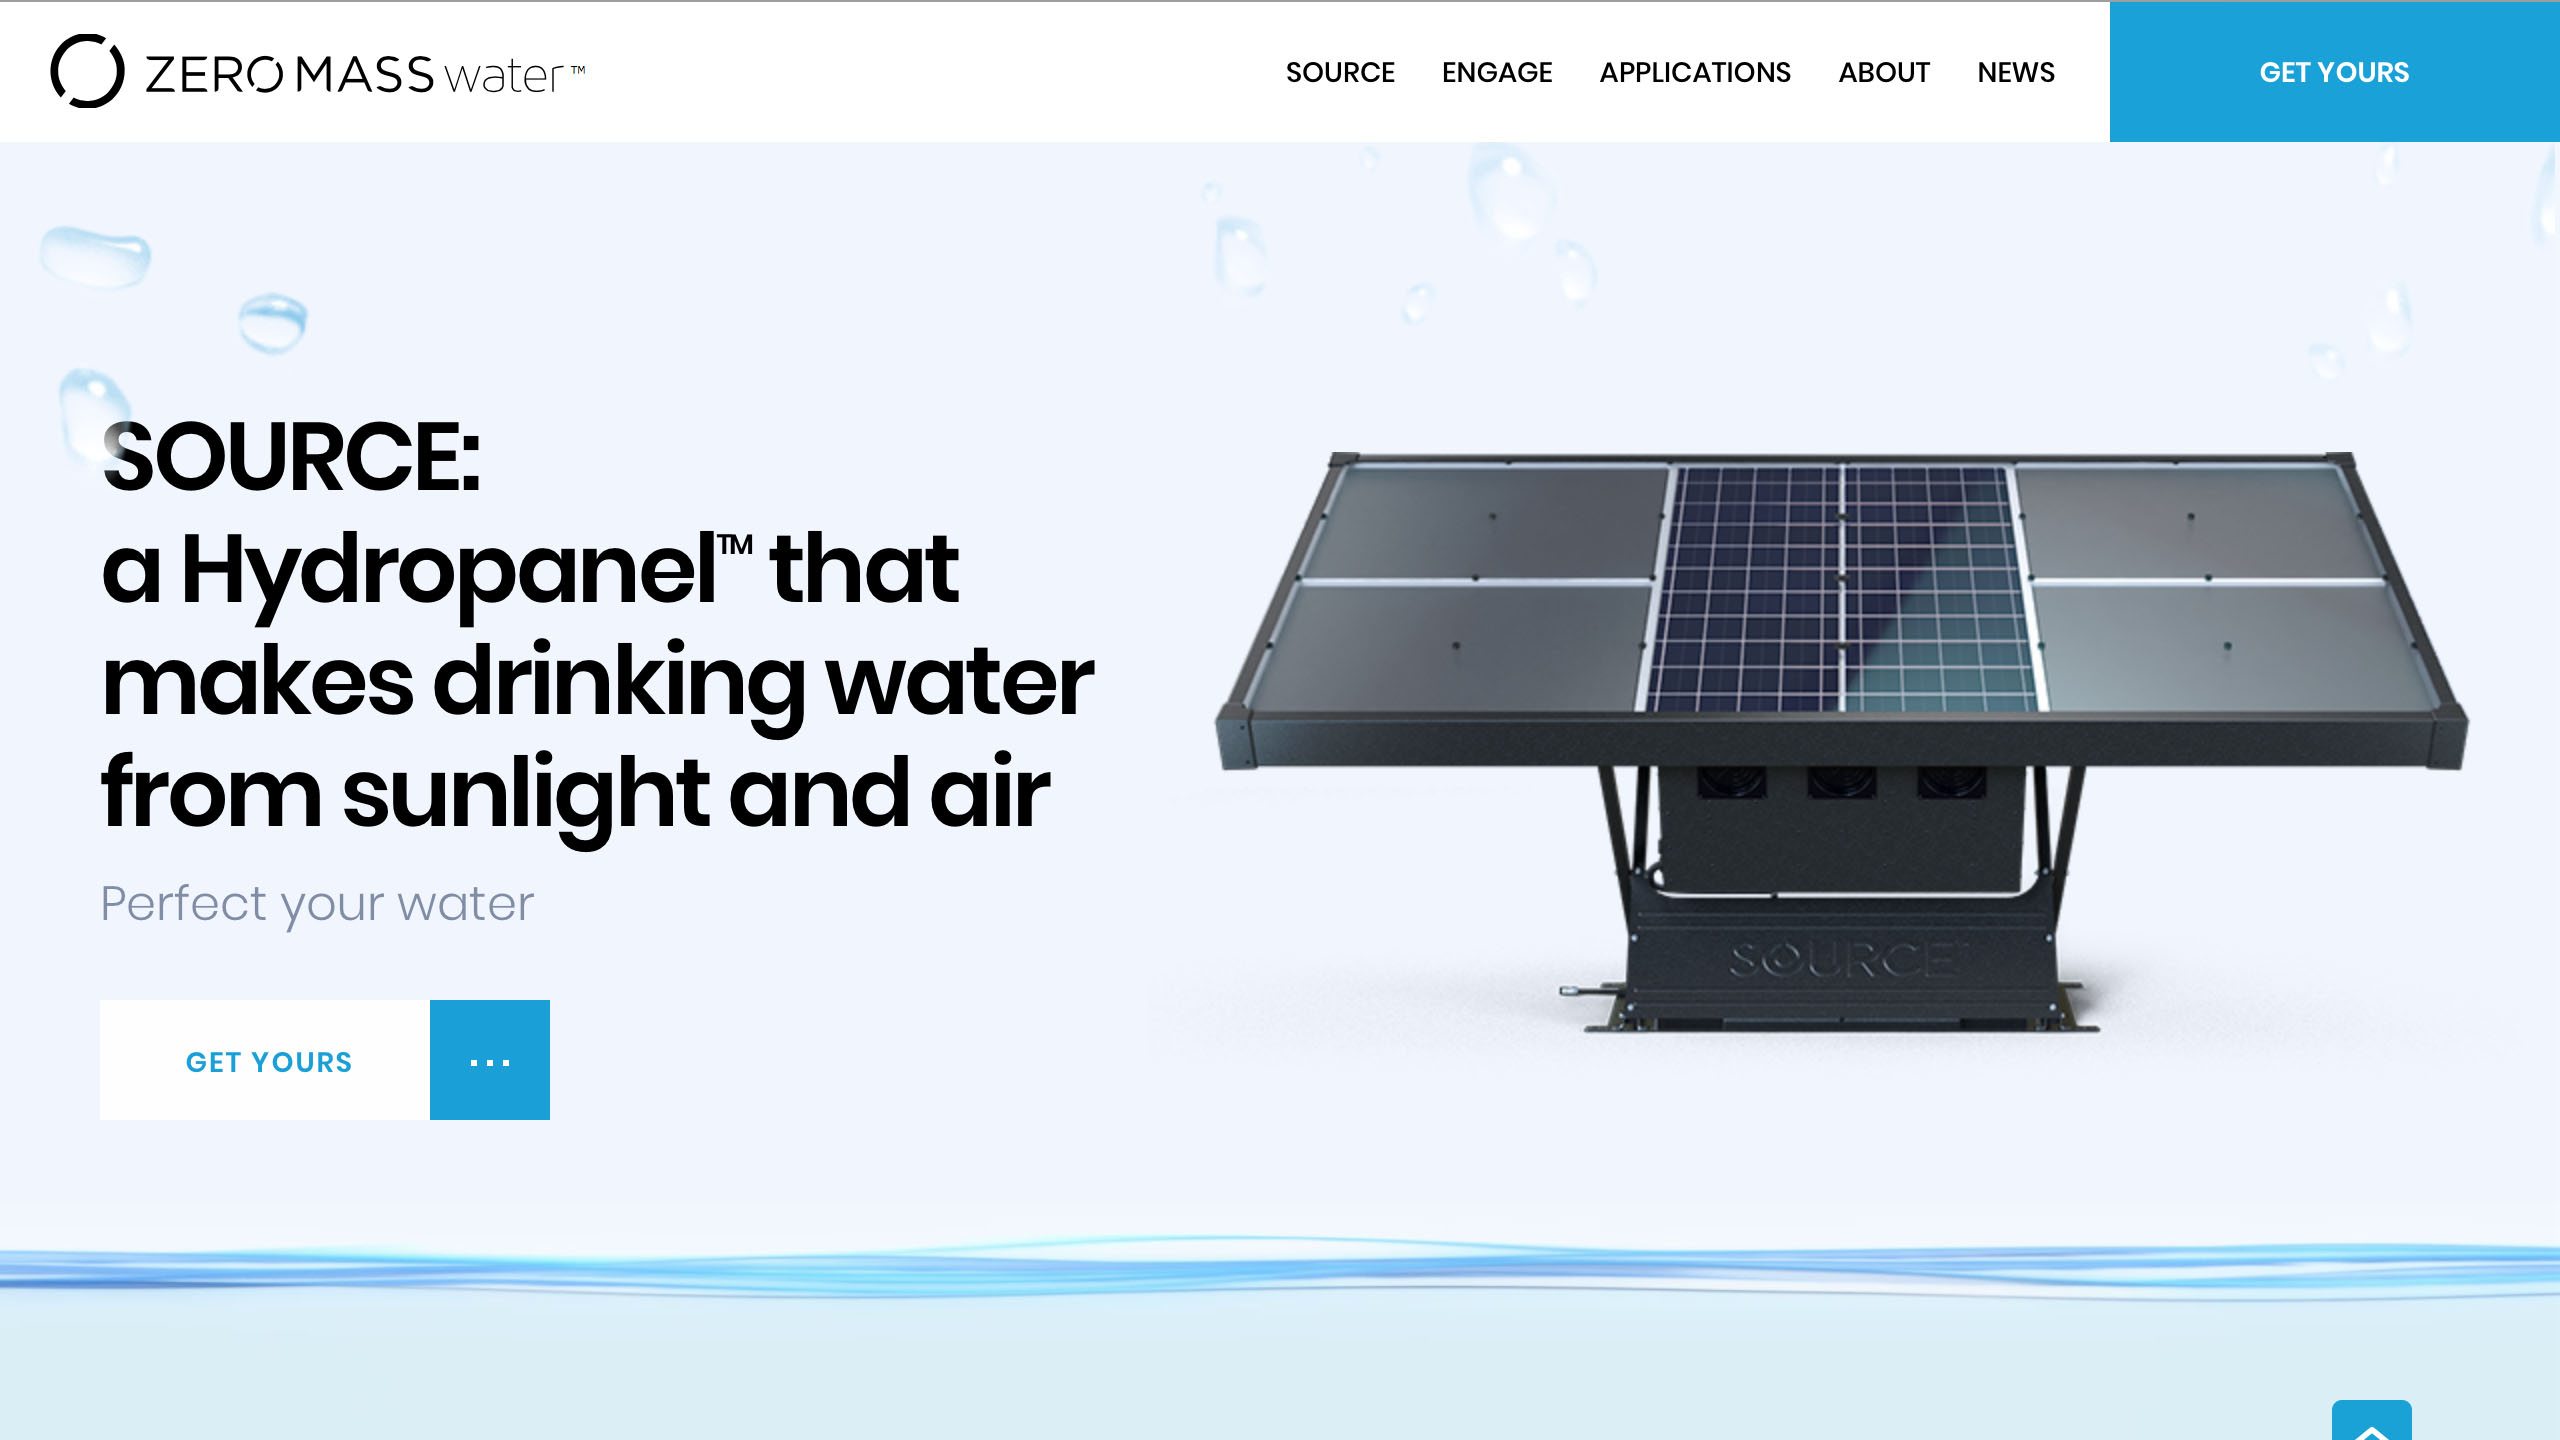 These Amazing Solar Panels Create Drinking Water From Only Air and